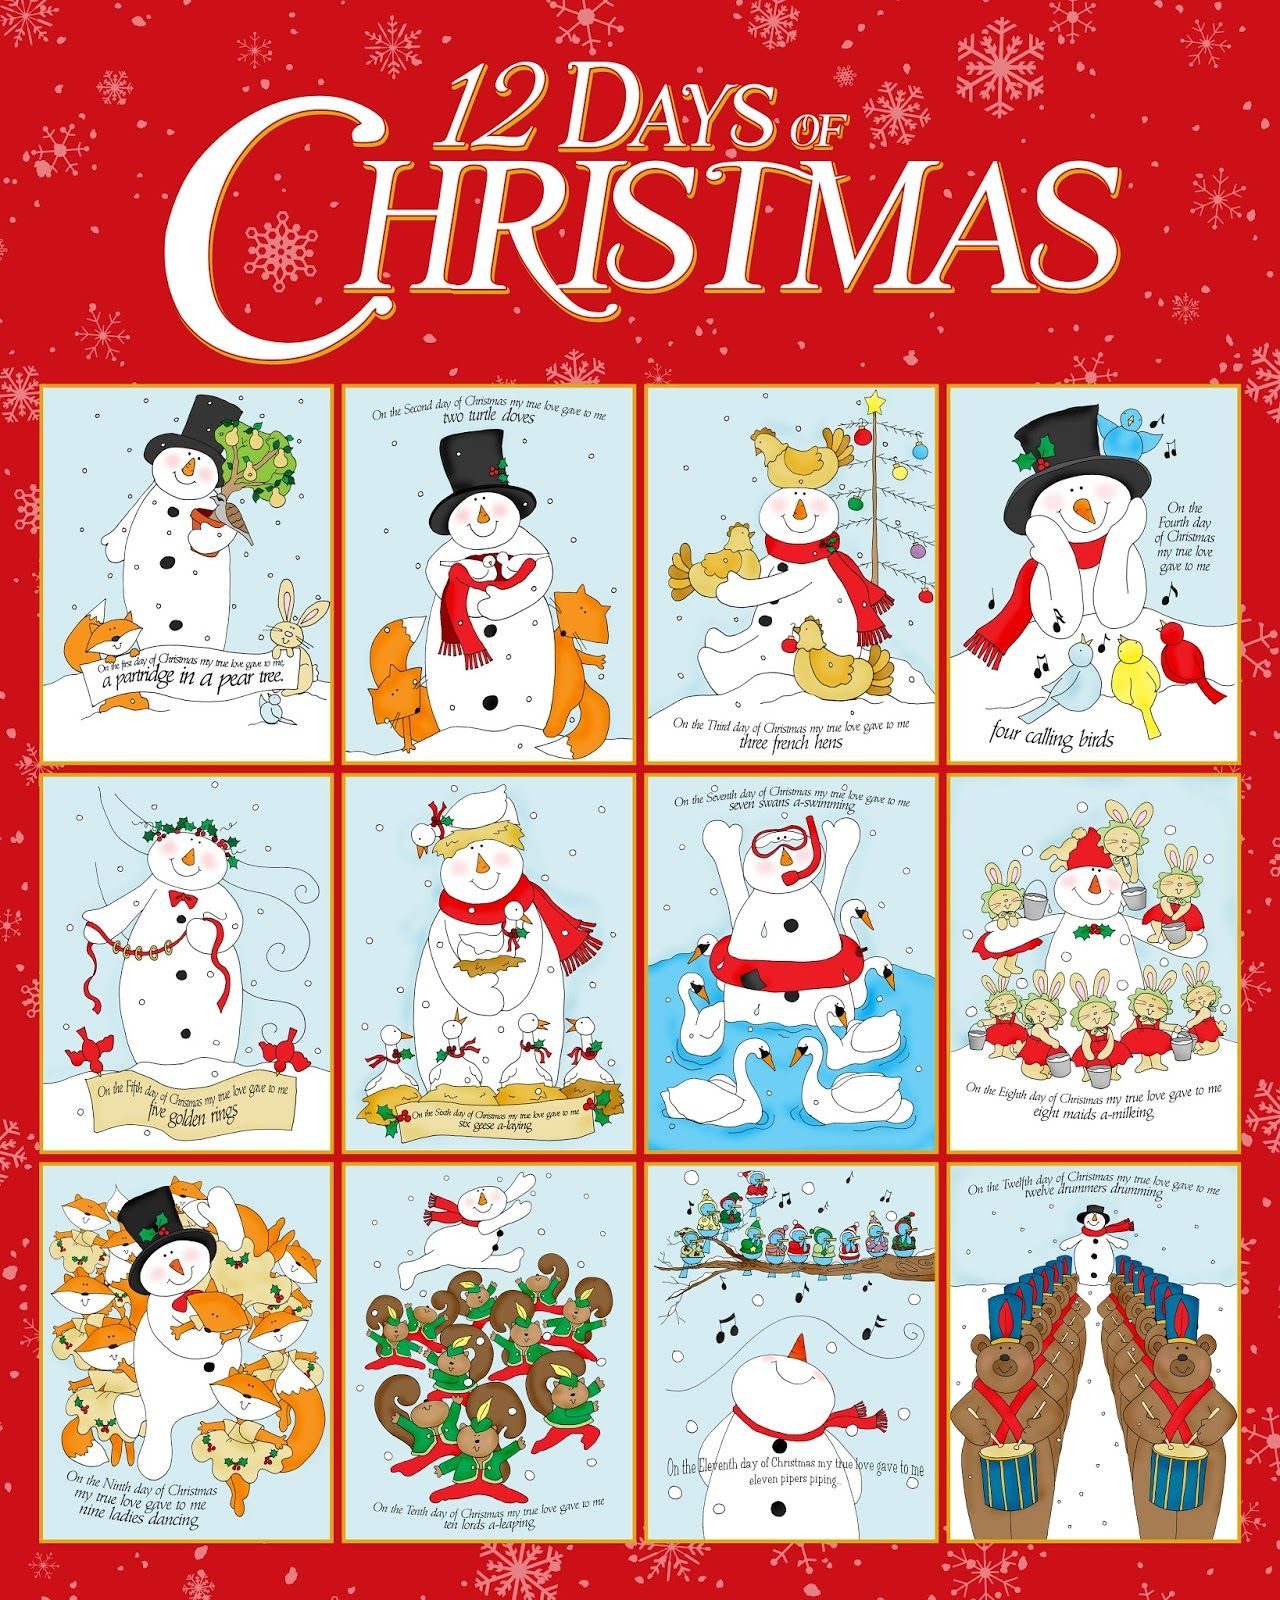 Free Dearie Dolls Digi Stamps Poster Of 12 Days Of Christmas Is Can Be Printed Out To